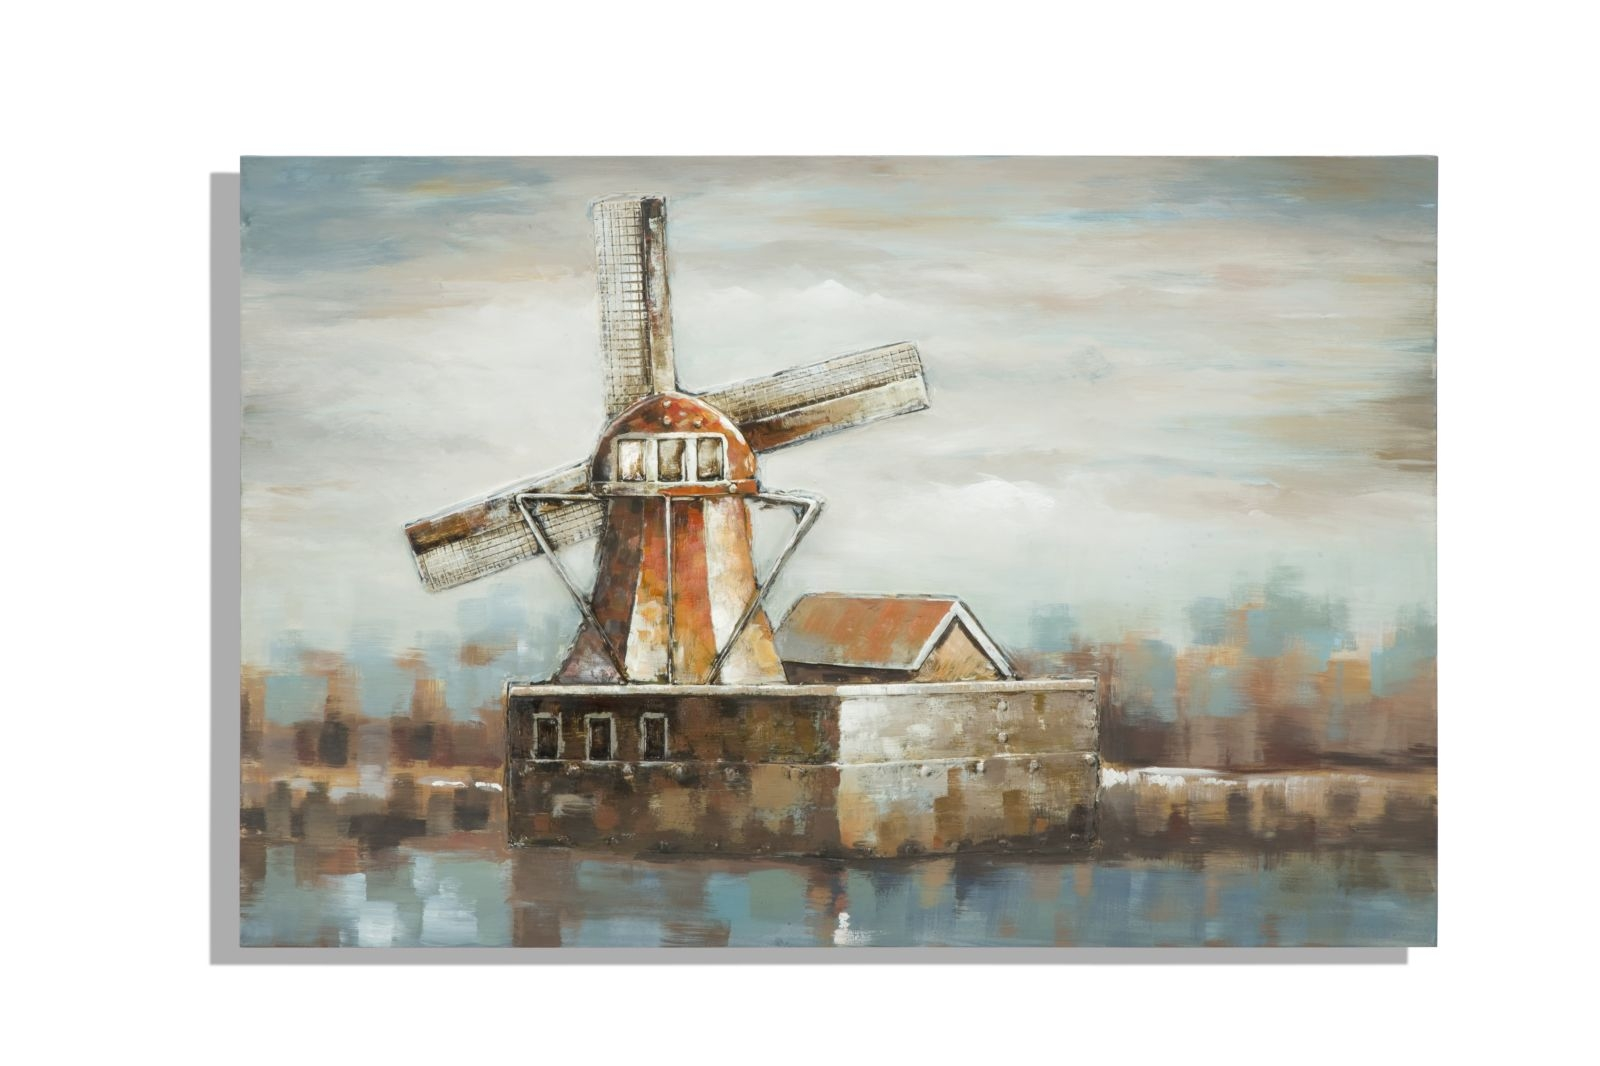 Tablou pictat manual Windmill Village, 80×120 cm